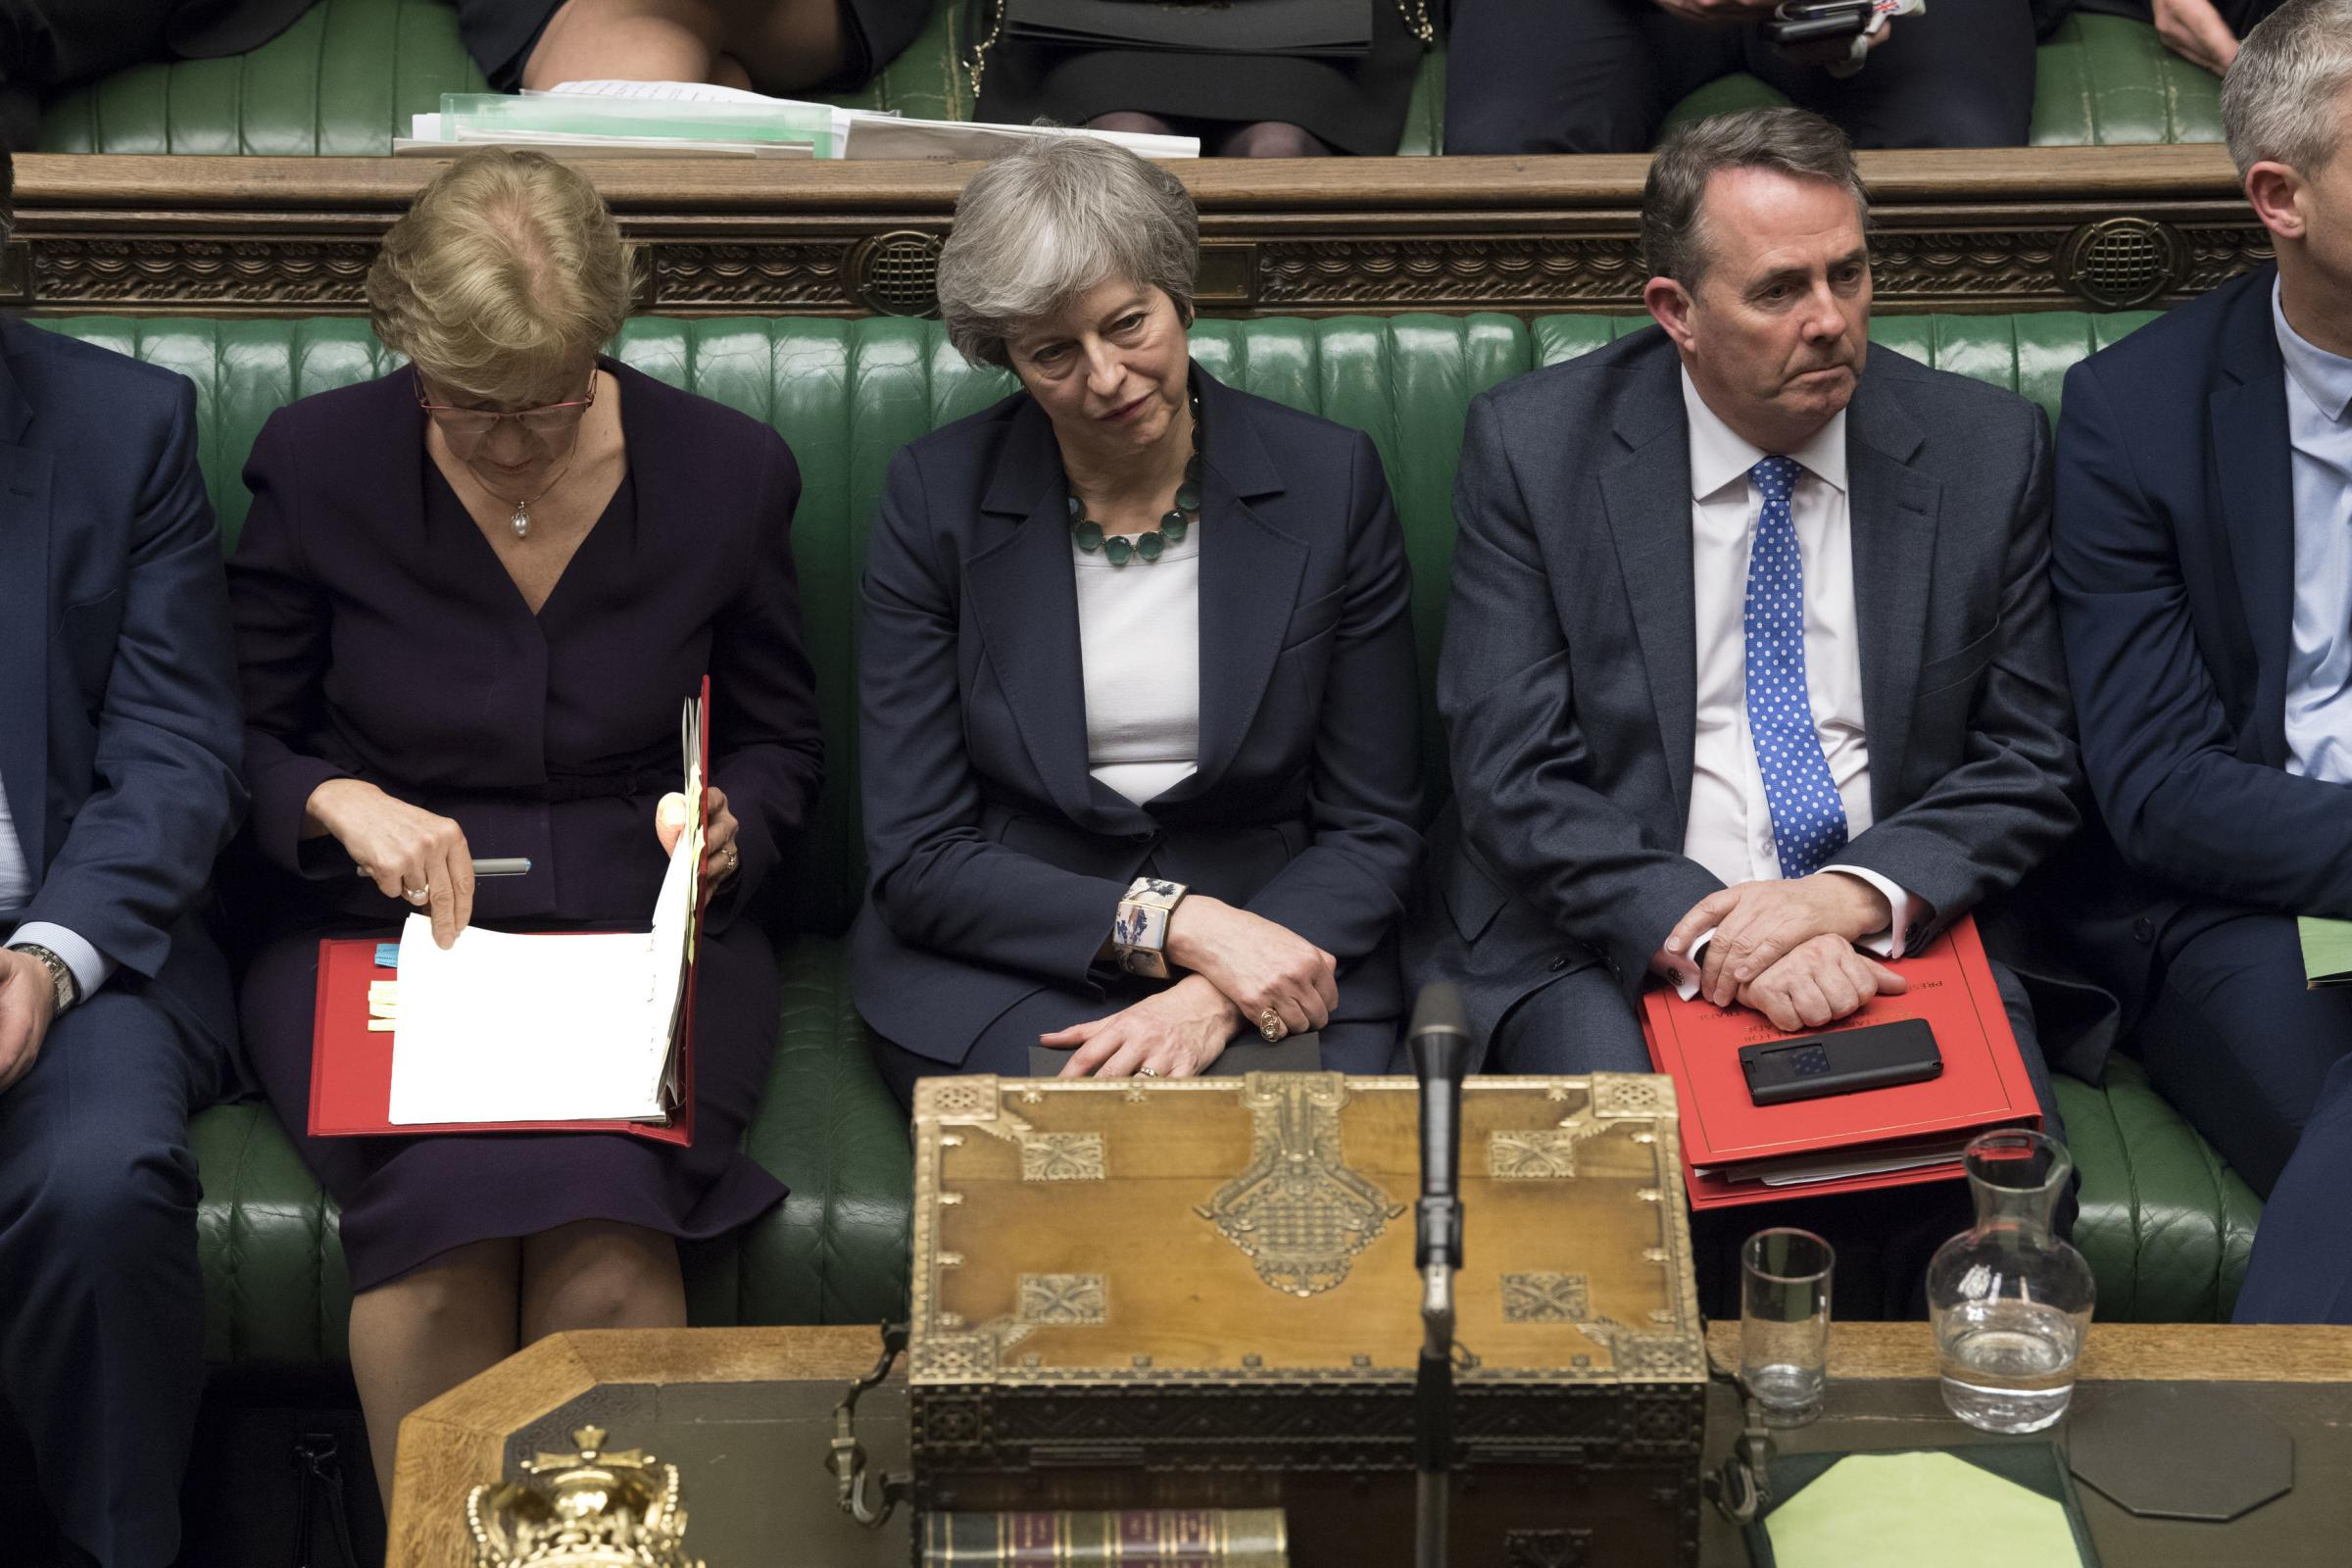 'TRAITOROUS MUPPETS': MPs have been strongly criticised by one letter writer... PICTURE: UK Parliament/Mark Duffy/PA Wire